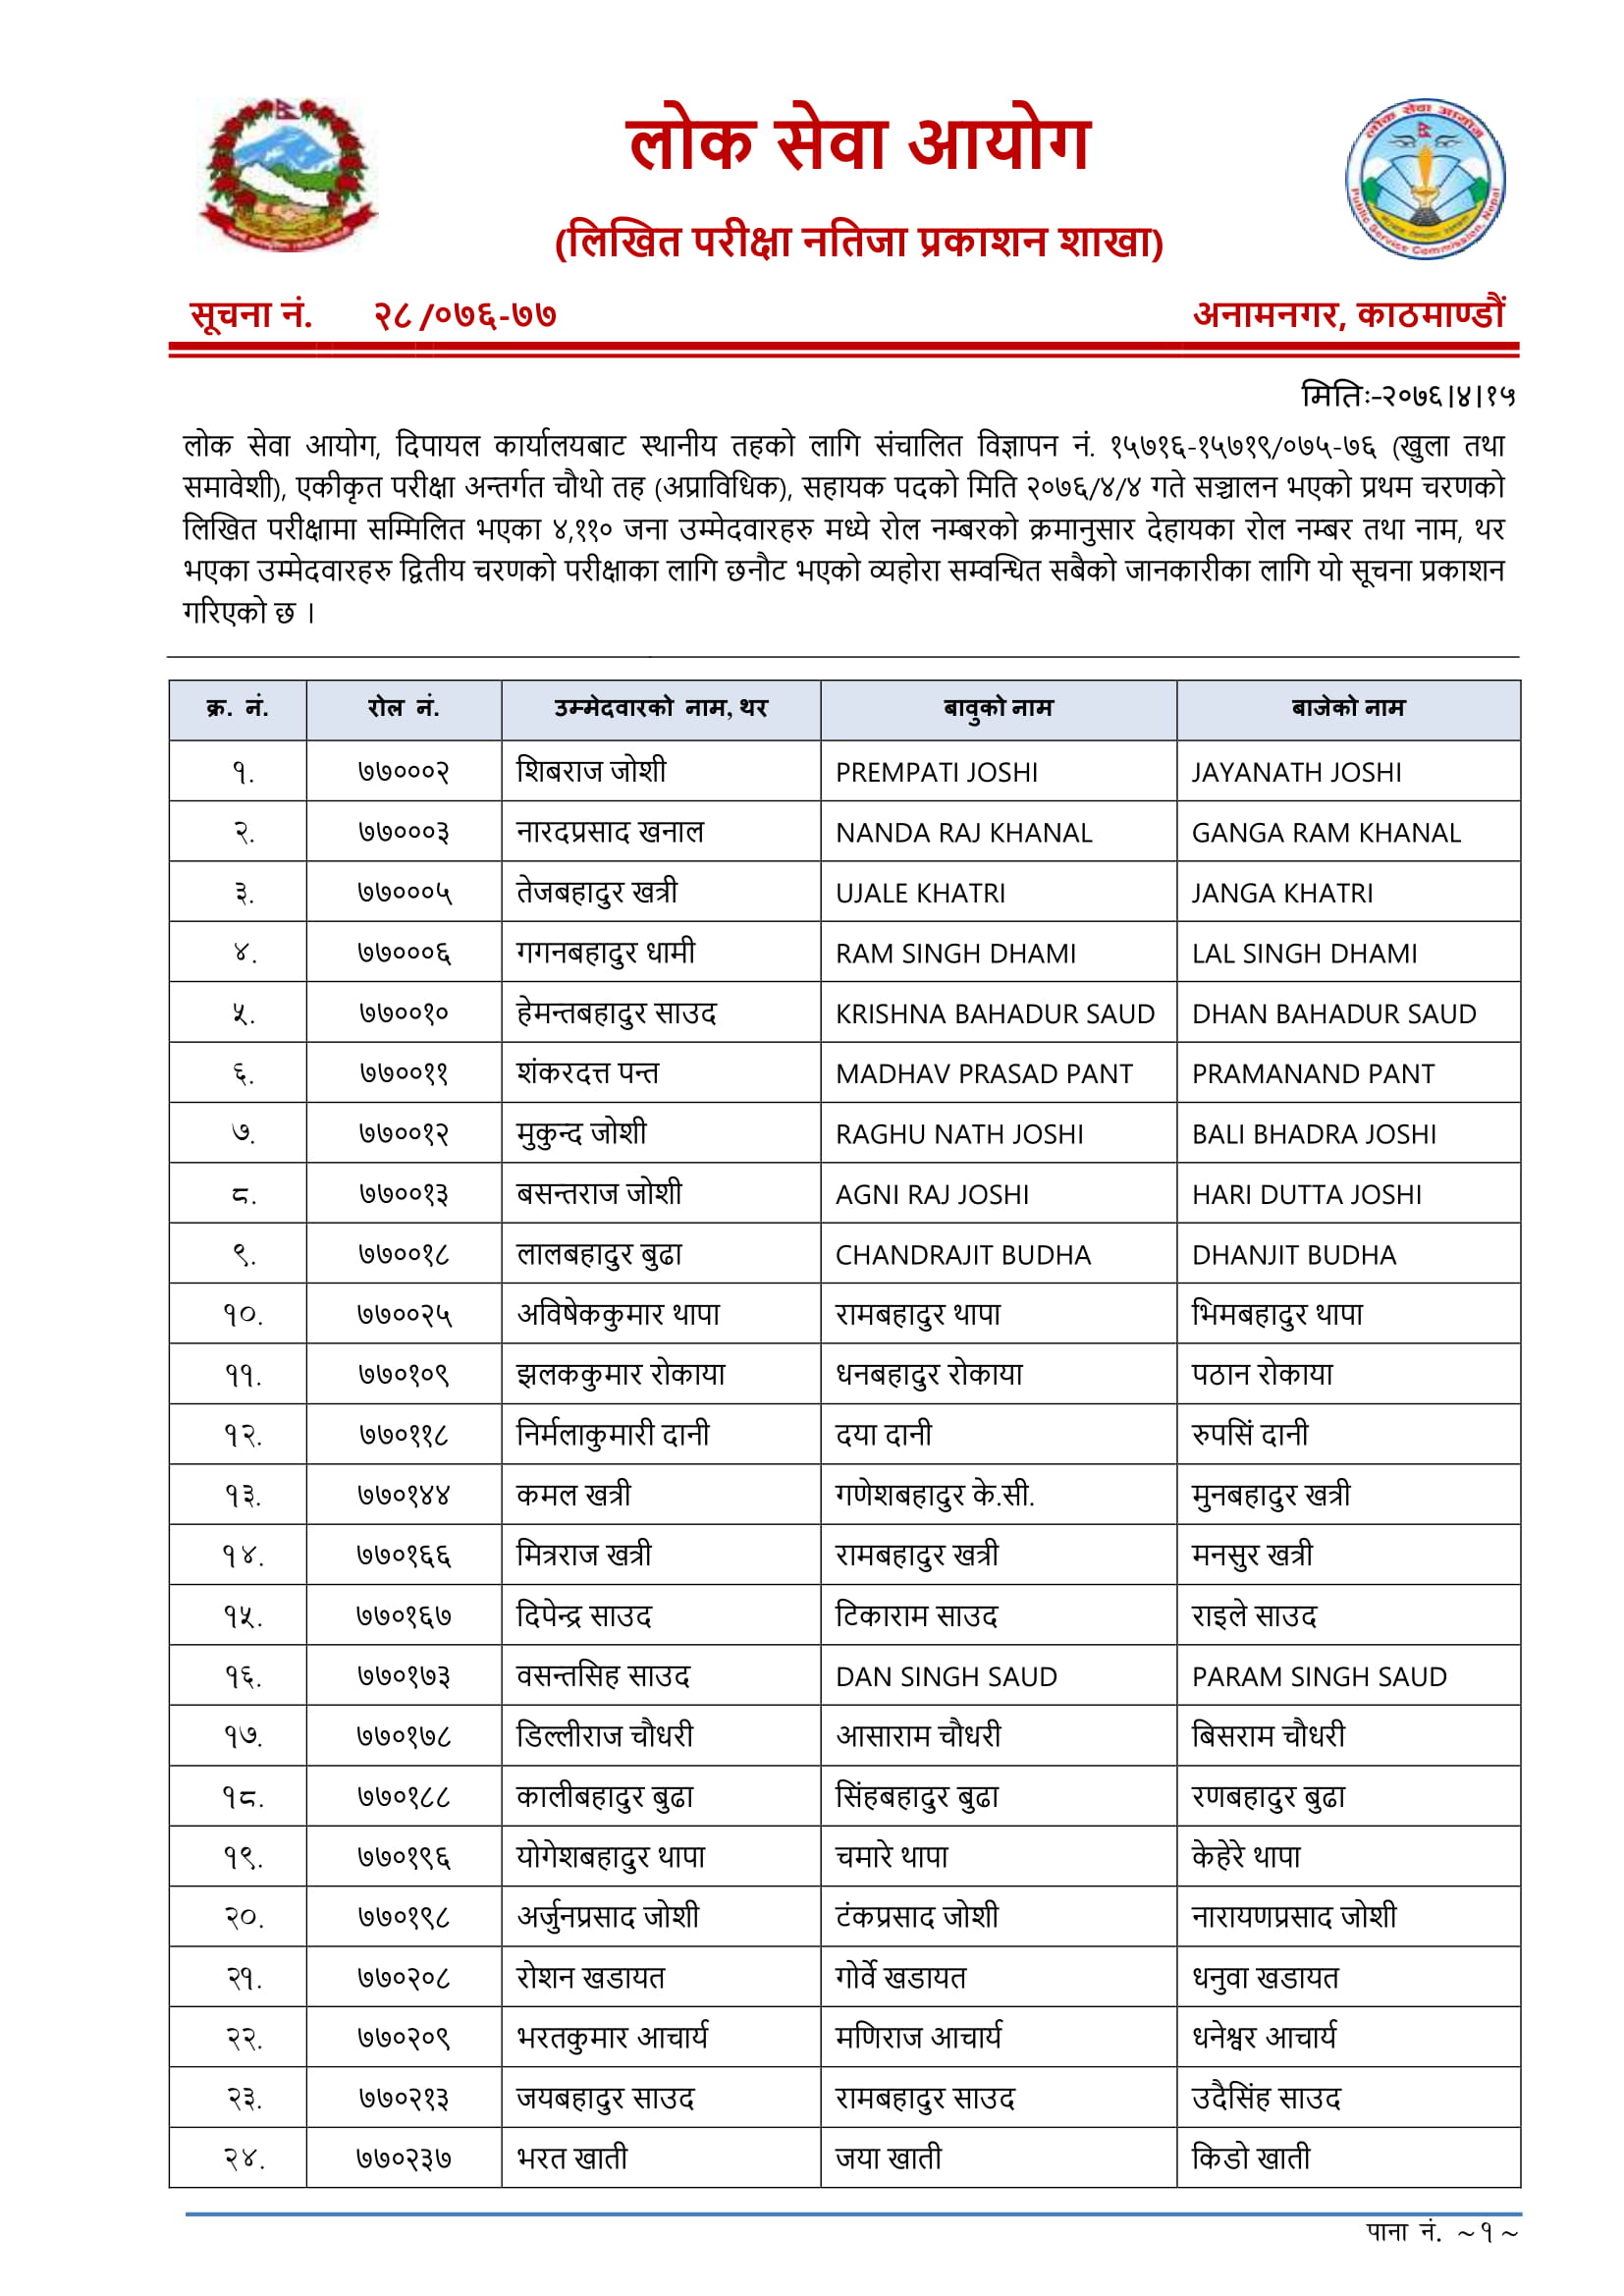 Lok Sewa Aayog Kharidar Written Exam Result-Dipayal Lok Sewa Aayog Nepal Dipayal has published the Entrance Exam result of local level (Sthaniya Taha) Non-Technical 4th level Advertisement No. 15716-15719 / 075-076 (Open and Inclusive), Integral Examination System 4th level (Non-Technical) examination Result of Dipayal. The Written Examination total number of Participant 4110 this candidate has been selected 652 in the Entrance Exam. Lok Sewa Aayog Result 2076 Kharidar 4th Level (Sthaniya Taha) Lok Sewa Aayog (Public Service Commission) publishes the final result of written examination 4th Level, Non-Technical, Kharidar (Sthaniya Taha 4th Level)  equivalent of the following Regions/districts. Lok Sewa Aayog Result- Dipayal Lok Sewa Aayog Nepal Published Local Level 5th Level Non-Technical Written Exam of the Entrance exam. The information for the Lok Sewa Aayog result update of Sthanaya Taha 4th level (Kharidar Result) entrance exam result has collected from the official site of Lok Sewa Aayog Nepal. These Lok Sewa Aayog result notices are for all advertisement numbers of the following Regions/districts. Click here to view Lok Sewa Aayog Kharidar Written Exam Result - Dipayal   Lok Sewa Aayog Jaleshwar Khridar Result 2076, Lok Sewa Aayog Jaleshwar Khridar Result, Jaleshwar Khridar Result 2076, Jaleshwar Khridar Result,lok sewa natija, Lok Sewa Natija 2076, Lok Sewa Result, Lok Sewa Result 2076, Lok Sewa Aayog Natija, Lok Sewa Aayog Natija 2076, lok sewa aayog result, Lok Sewa Aayog Result 2076, Lok sewa Aayog Sthaniya Taha result , Lok sewa Sthaniya Taha result, Lok Sewa Nayab Subba Result, lok sewa Nayab Subba result, Lok Sewa Result Nayab Subba, Lok Sewa Result Nayab Subba 2076 , psc Nayab Subba result , PSC Nayab Subba Result 2076, Sthaniya Taha Nayab Subba natija , Sthaniya Taha Nayab Subba result, Lok sewa aayog Nayab Subba Result ,lok sewa aayog Nayab Subba result 2076, Lok Sewa Khridar Result,lok sewa Khridar result, Lok Sewa Result Khridar, Lok Sewa Result Khridar 2076 , psc Khridar result , PSC Khridar Result 2076, Sthaniya Taha Khridar natija , Sthaniya Taha Khridar result,Lok sewa aayog Khridar Result, lok sewa aayog Khridar result 2076, स्थानीय तह नतिजा, 4th Level Result, lok sewa aayog result, lok sewa aayog result 2076, lok sewa aayog result 2019, lok sewa aayog result Kharidar, lok sewa aayog result 4th Level, lok sewa aayog result 2076 sthaniya taha, lok sewa aayog result 2019 sthaniya taha, lok sewa result, lok sewa result 2076, lok sewa result 2019, lok sewa result kharidar, lok sewa result 4th Level, lok sewa result 2076 sthaniya taha, lok sewa result 2019 sthaniya taha,